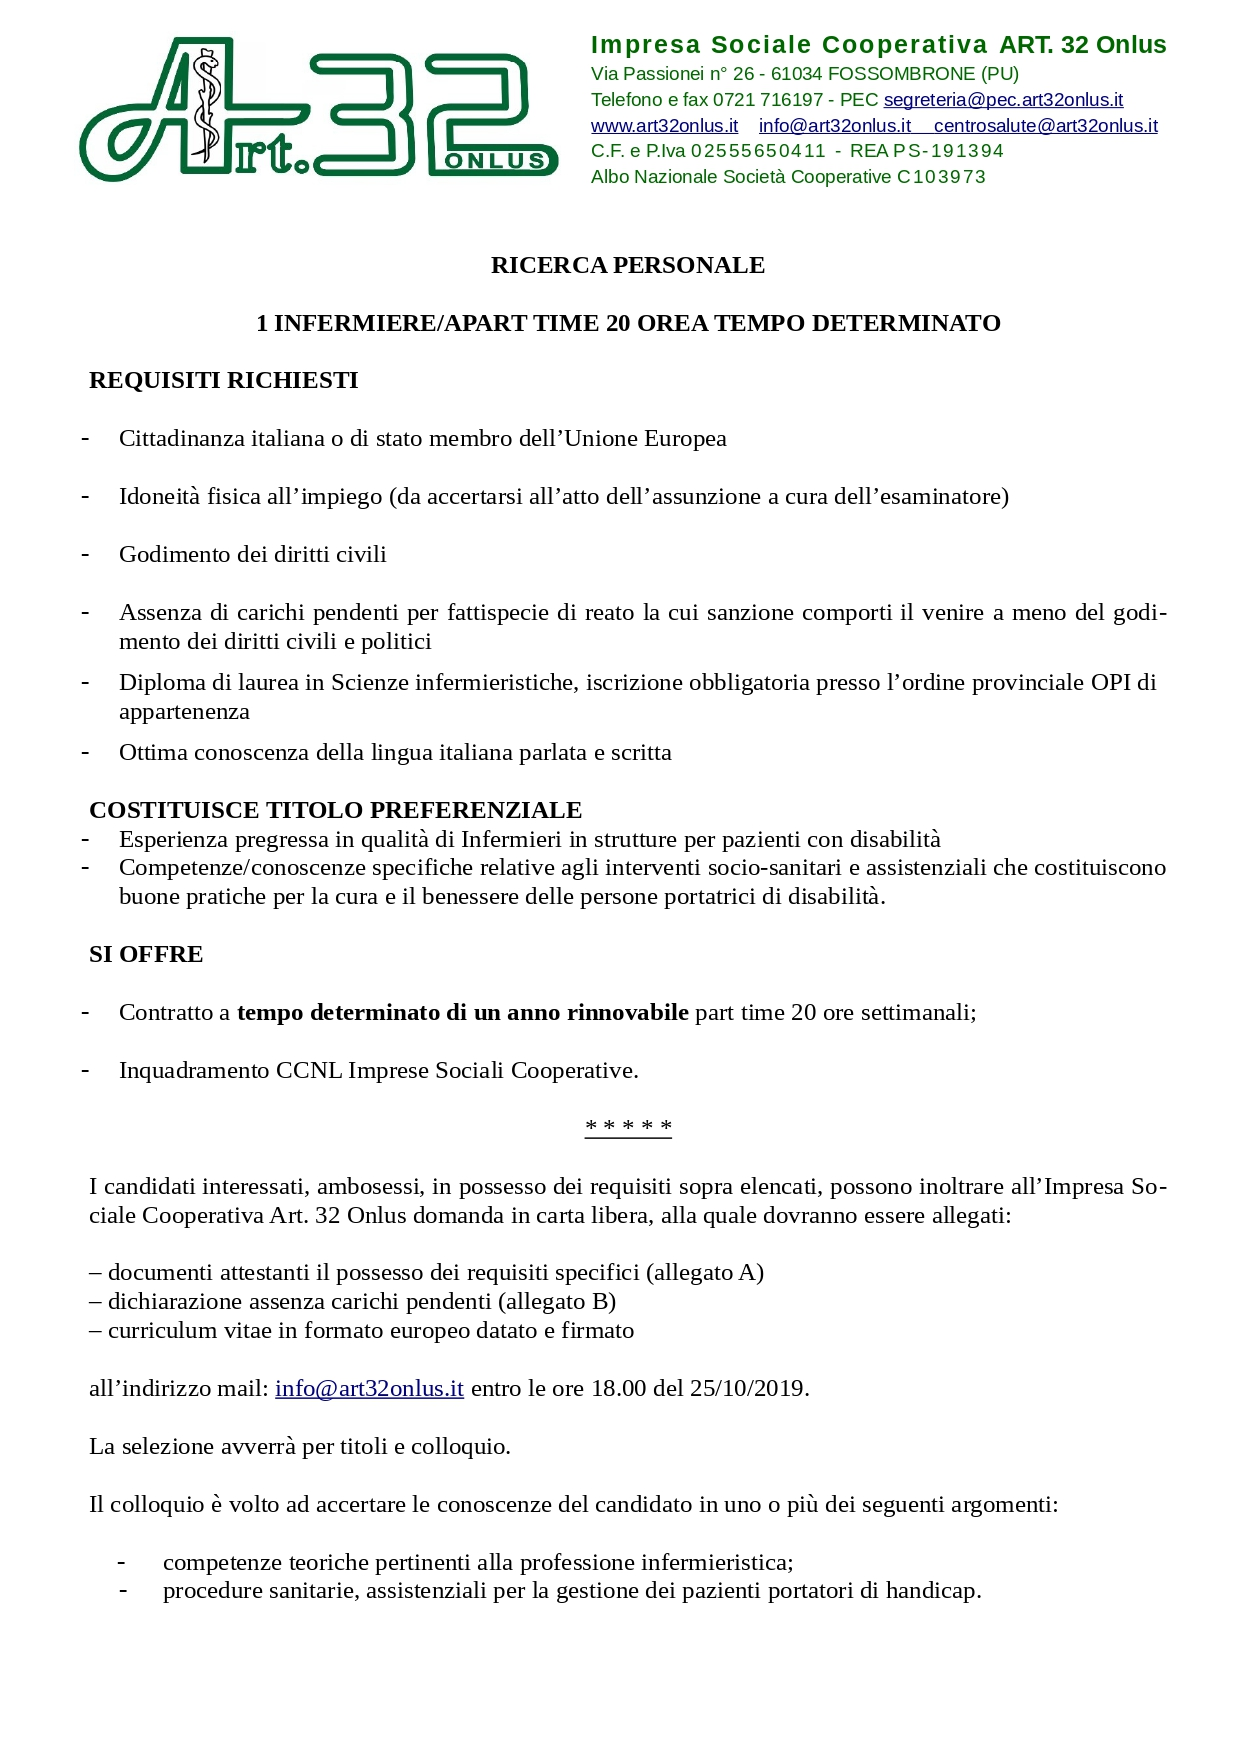 BANDO ASSUNZIONE INFERMIERE-1_pages-to-jpg-0001